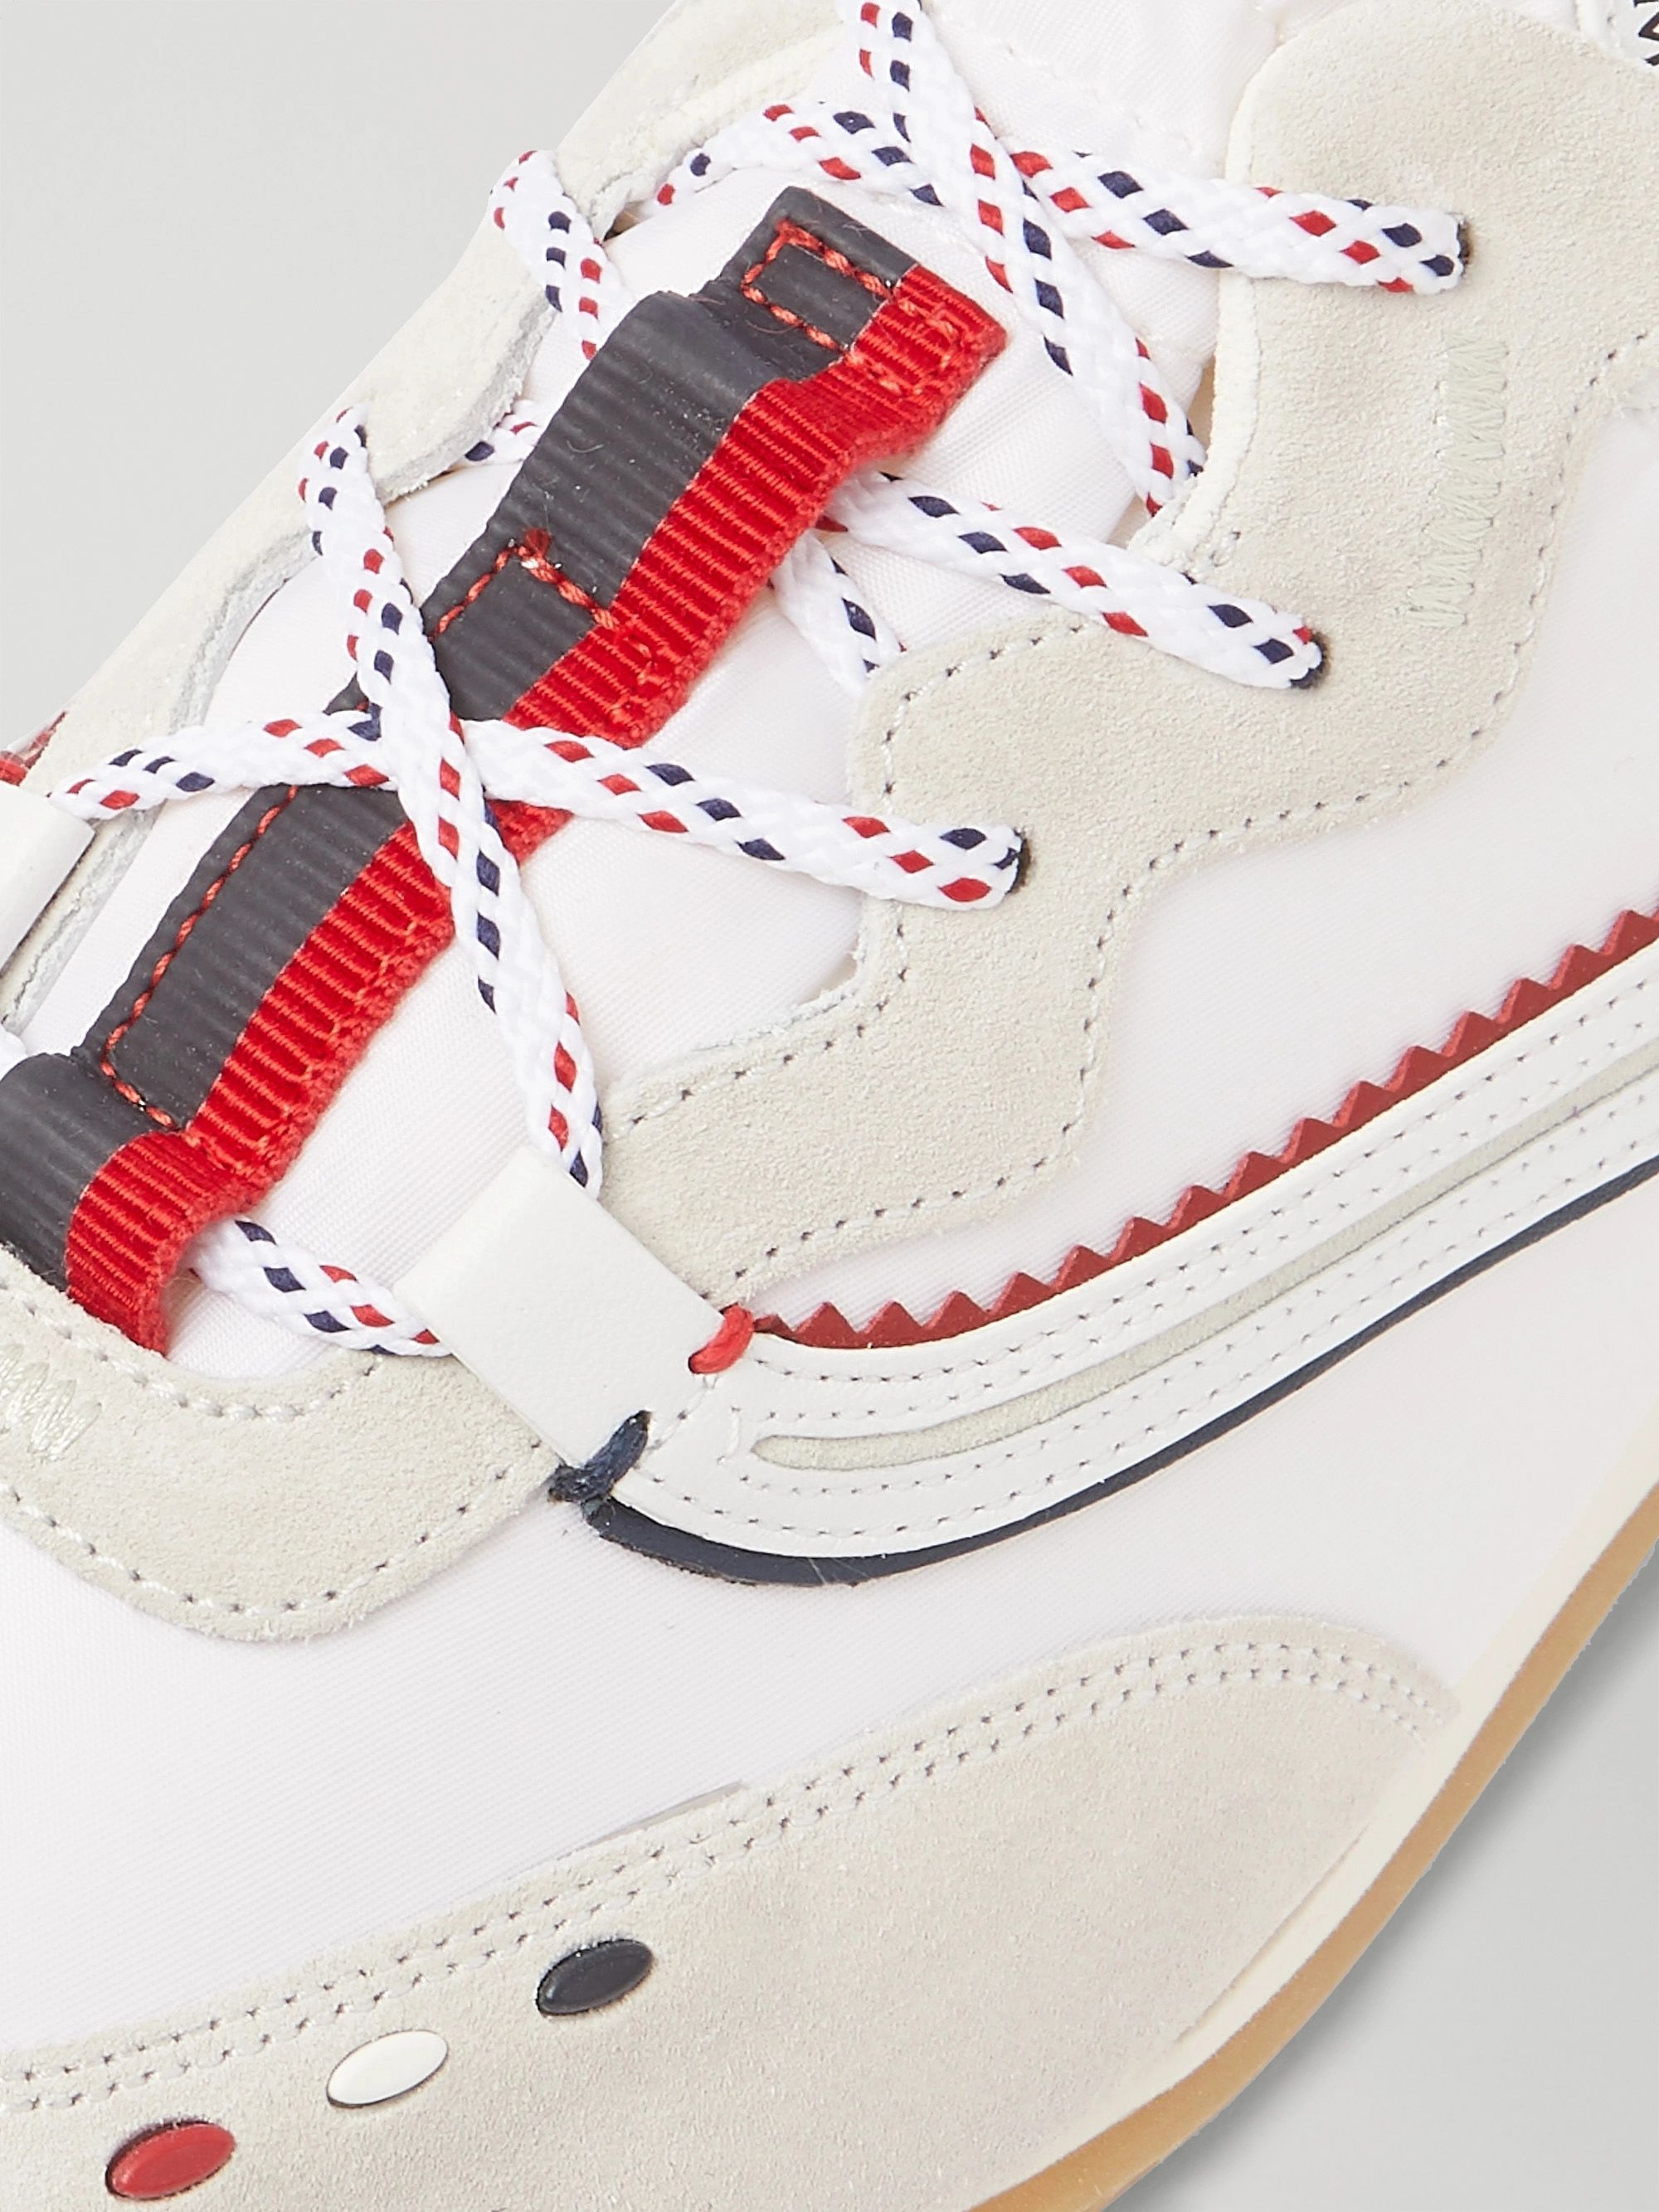 2 Moncler 1952 Leather Trimmed Canvas and Suede Sneakers